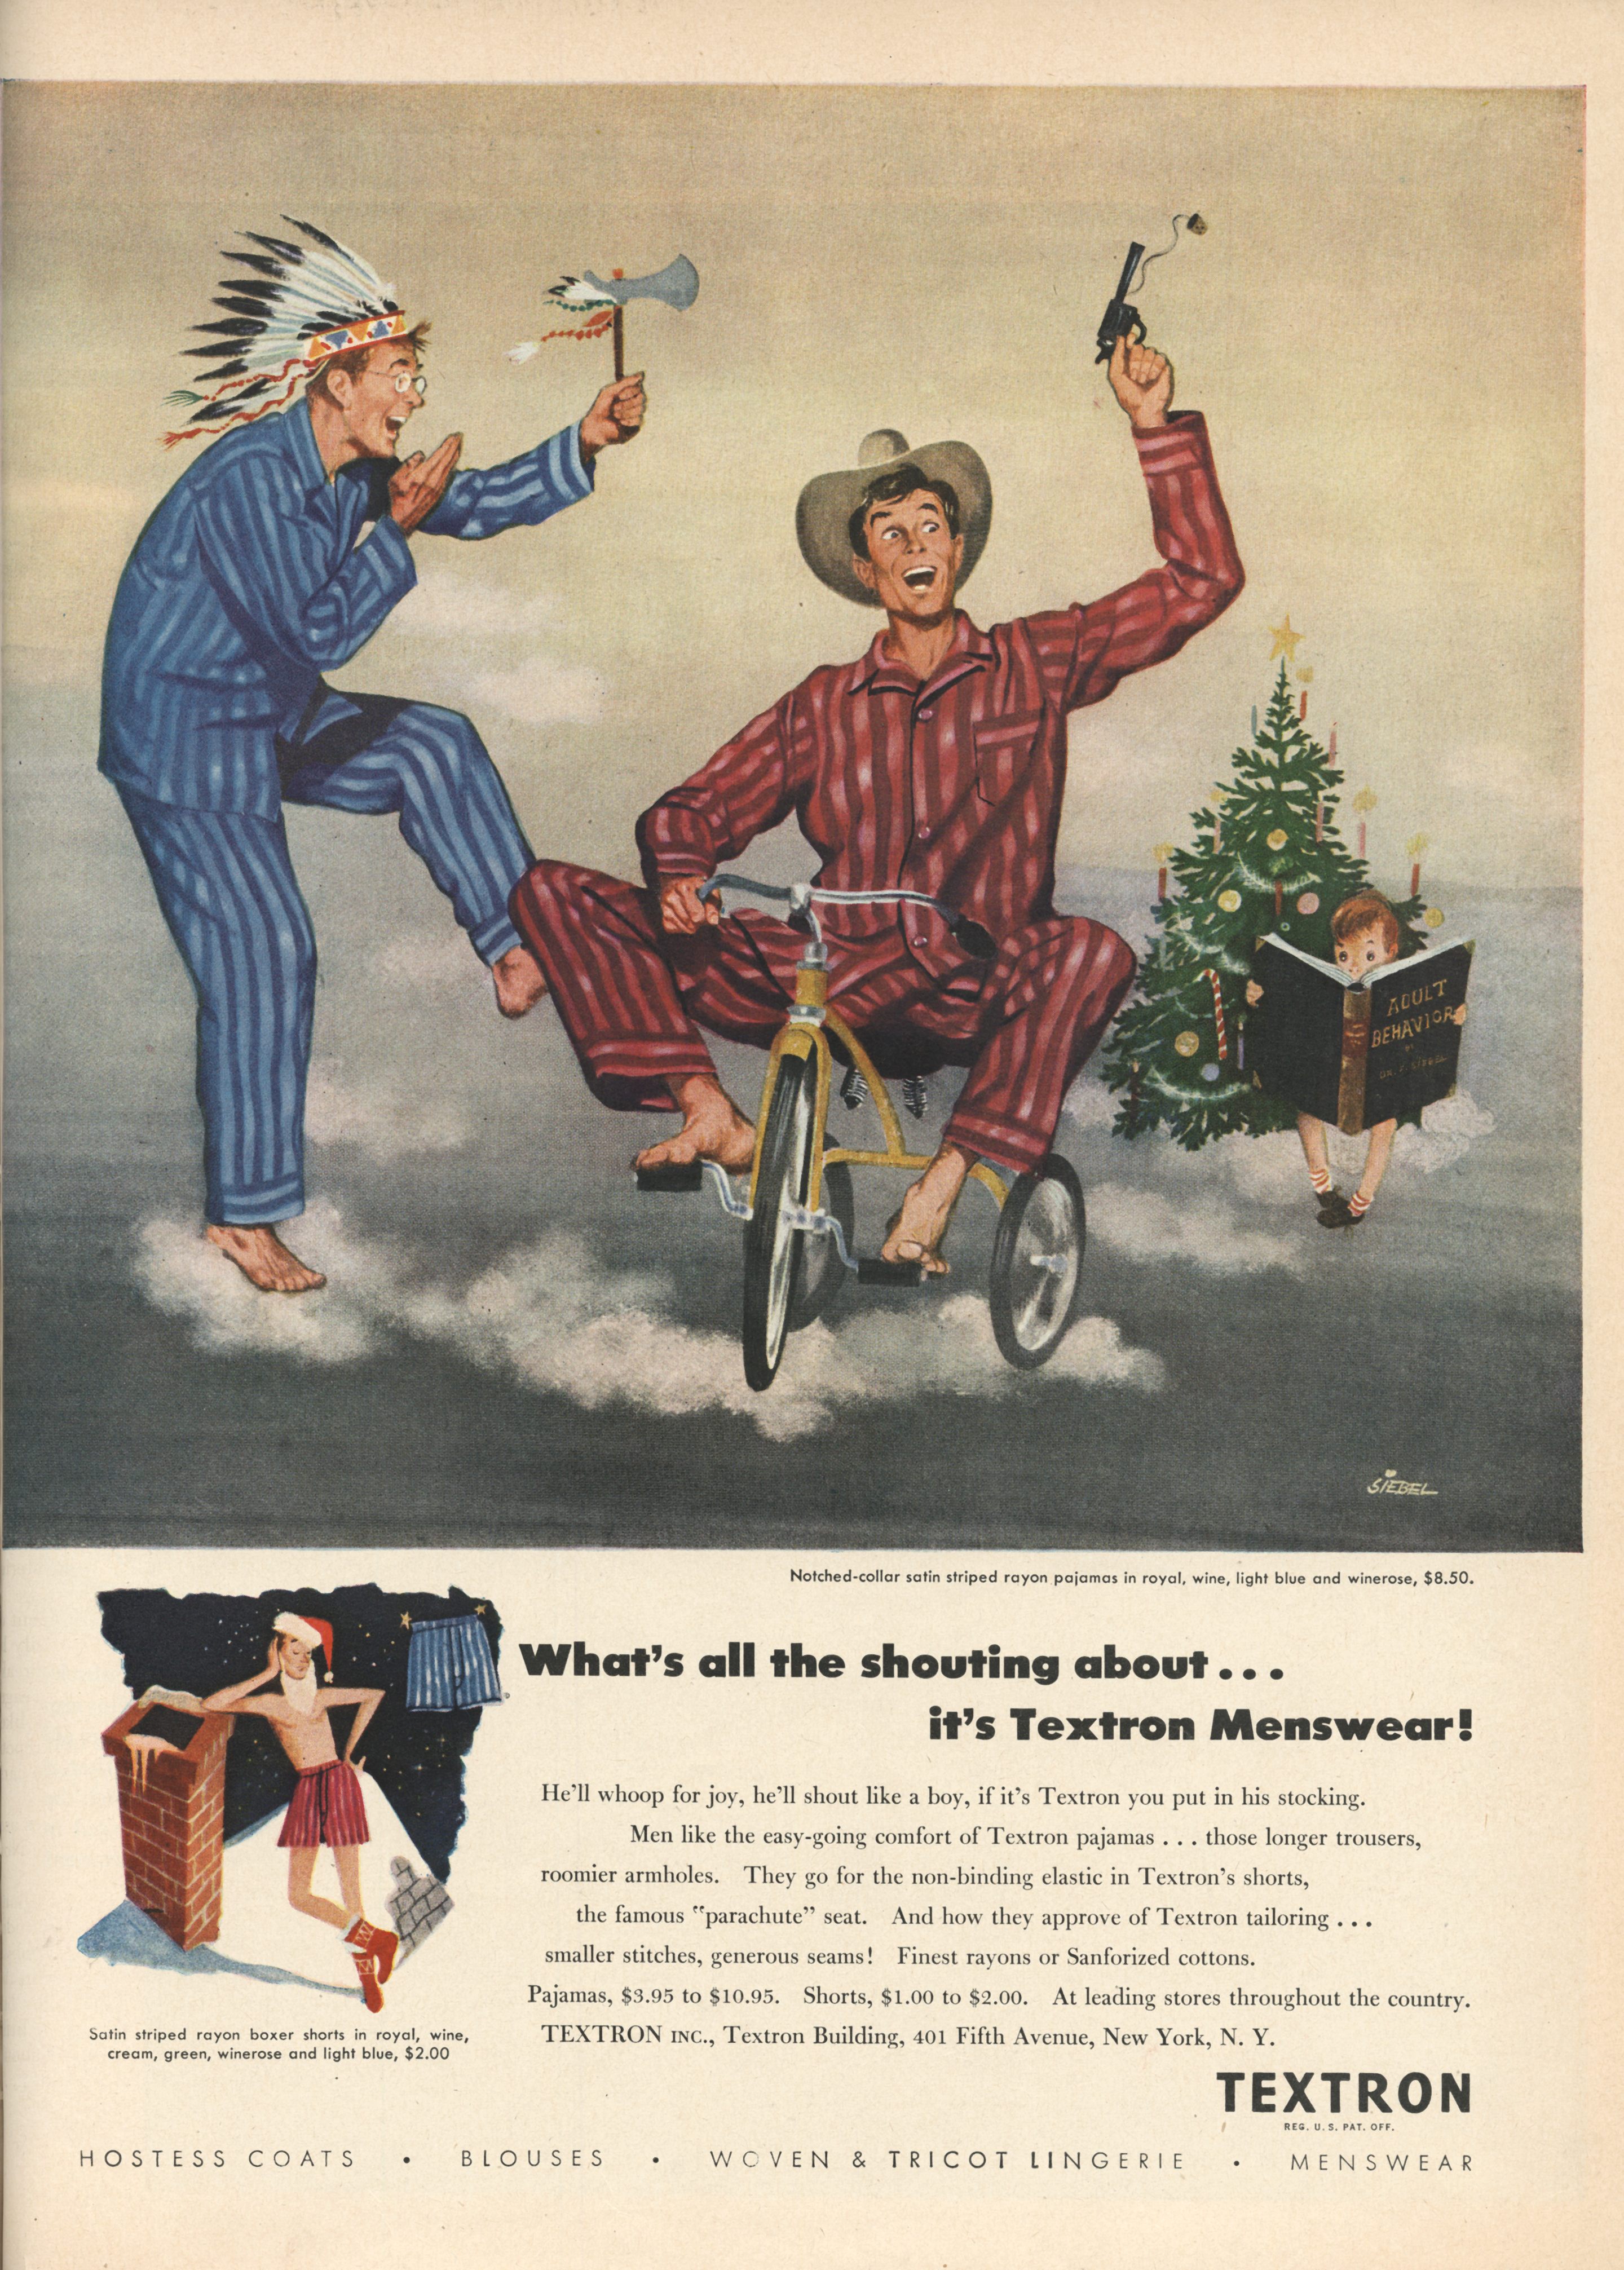 Textron - published in Life - December 13, 1948